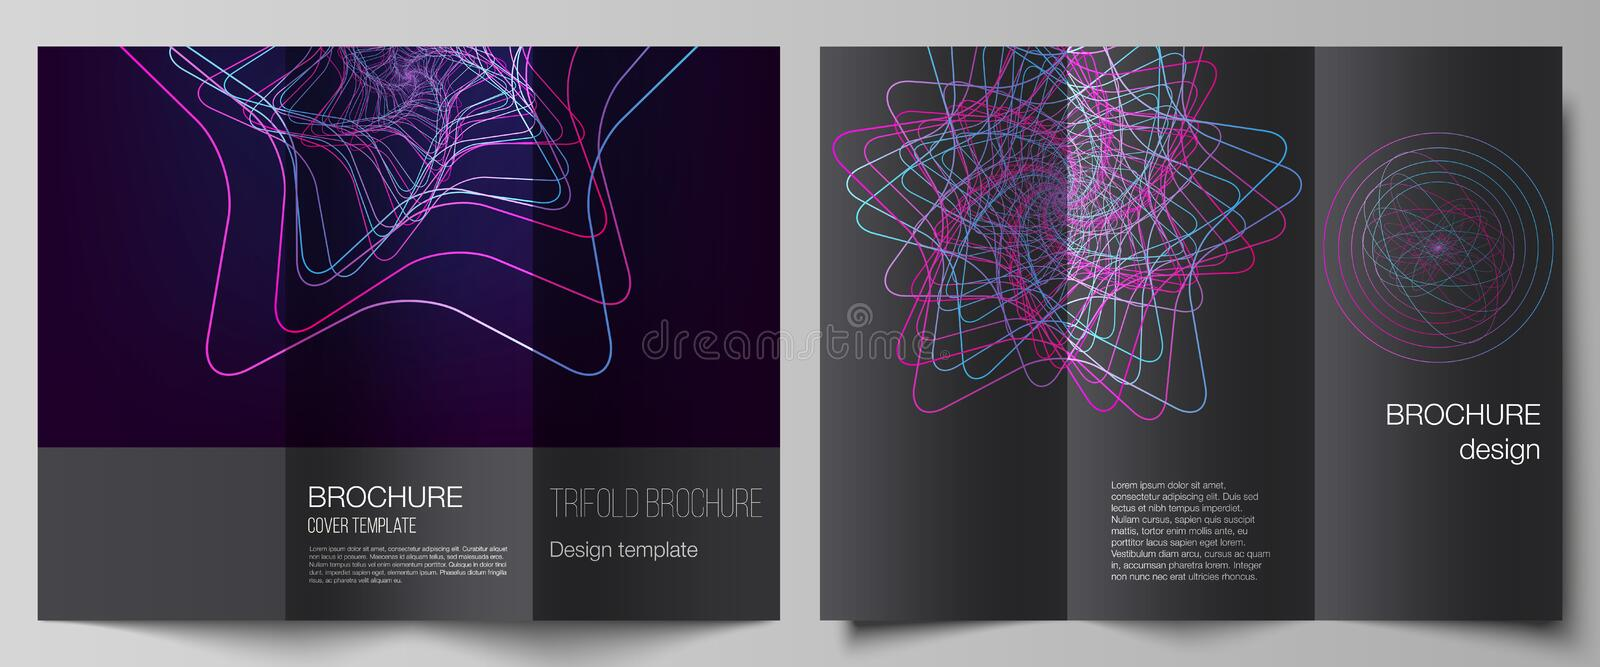 Vector layouts of modern creative covers design templates for trifold brochure or flyer. Random chaotic lines that creat. Real shapes. Chaos pattern, abstract vector illustration